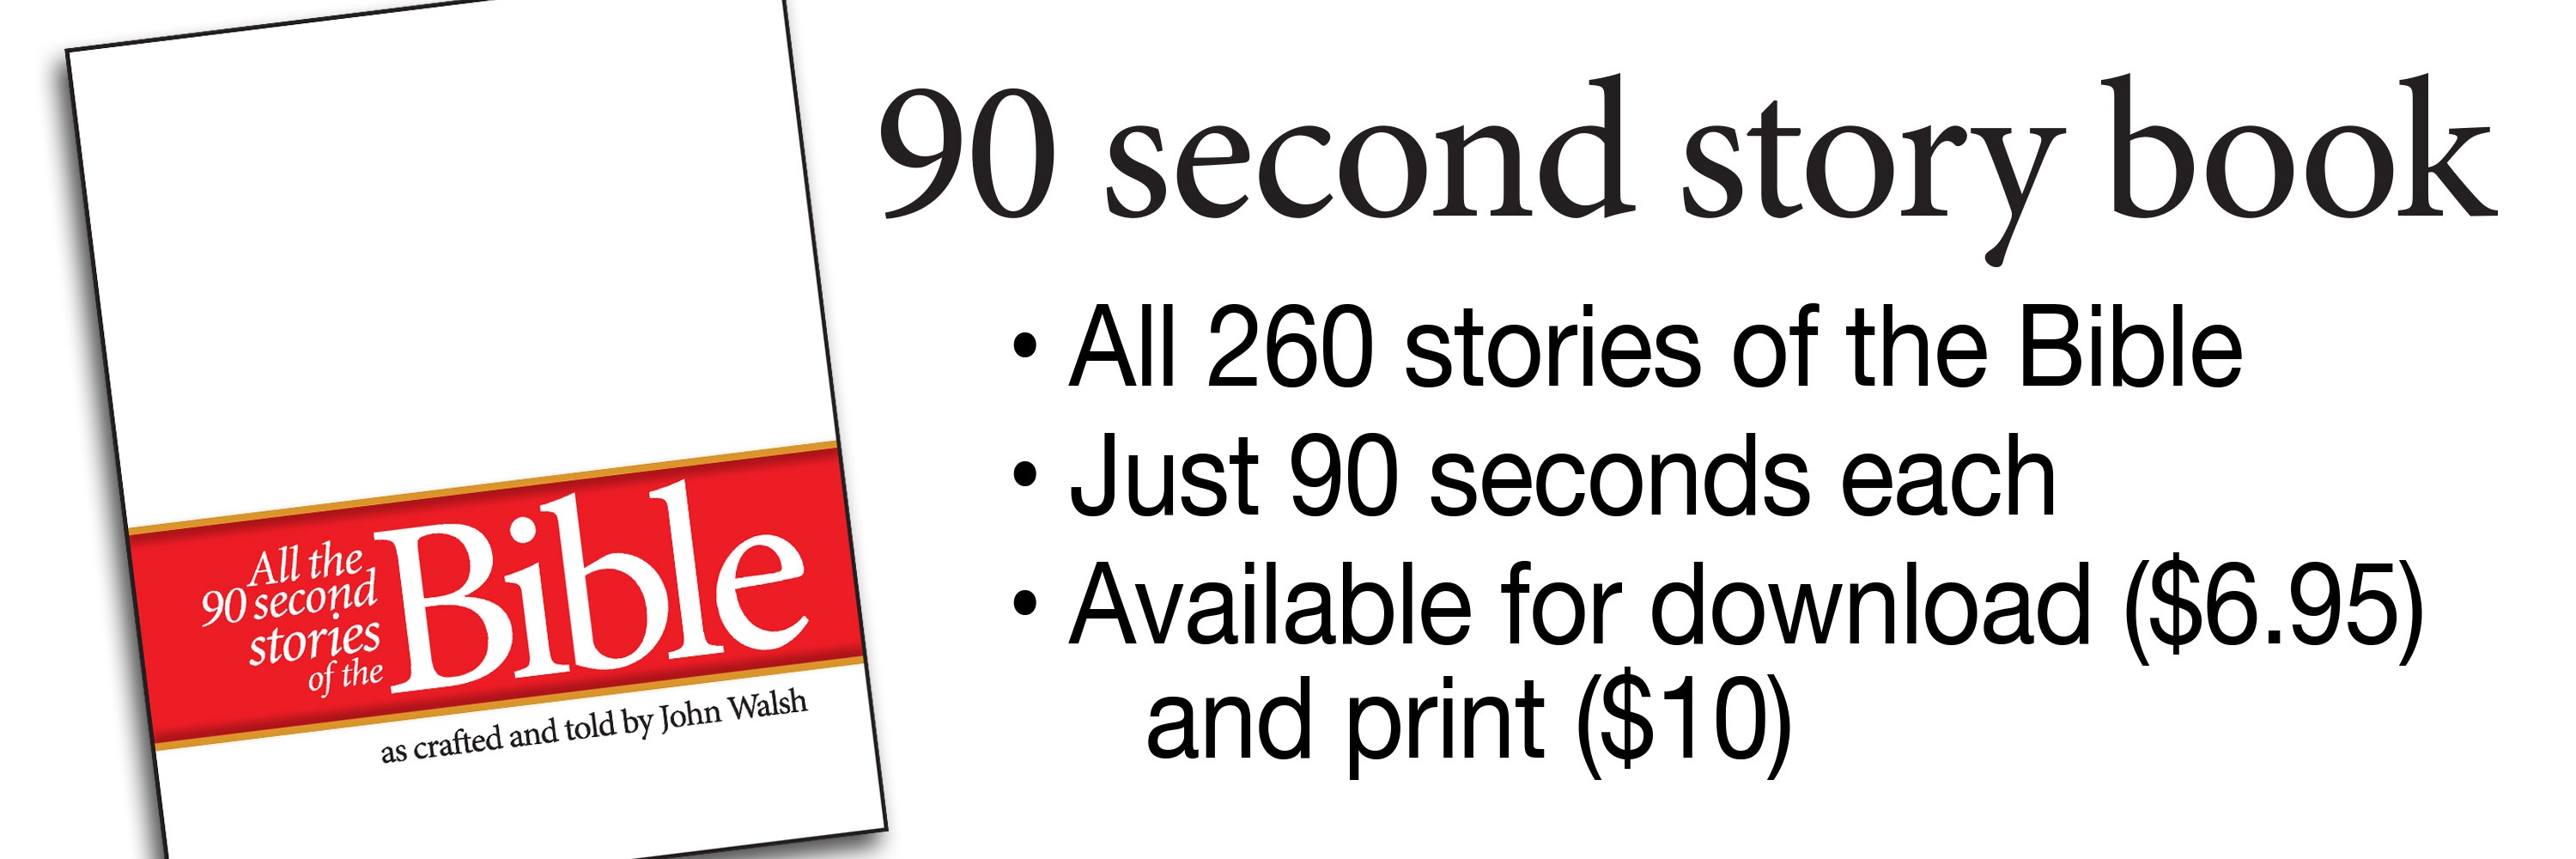 Home-page-slide-90-second-stories